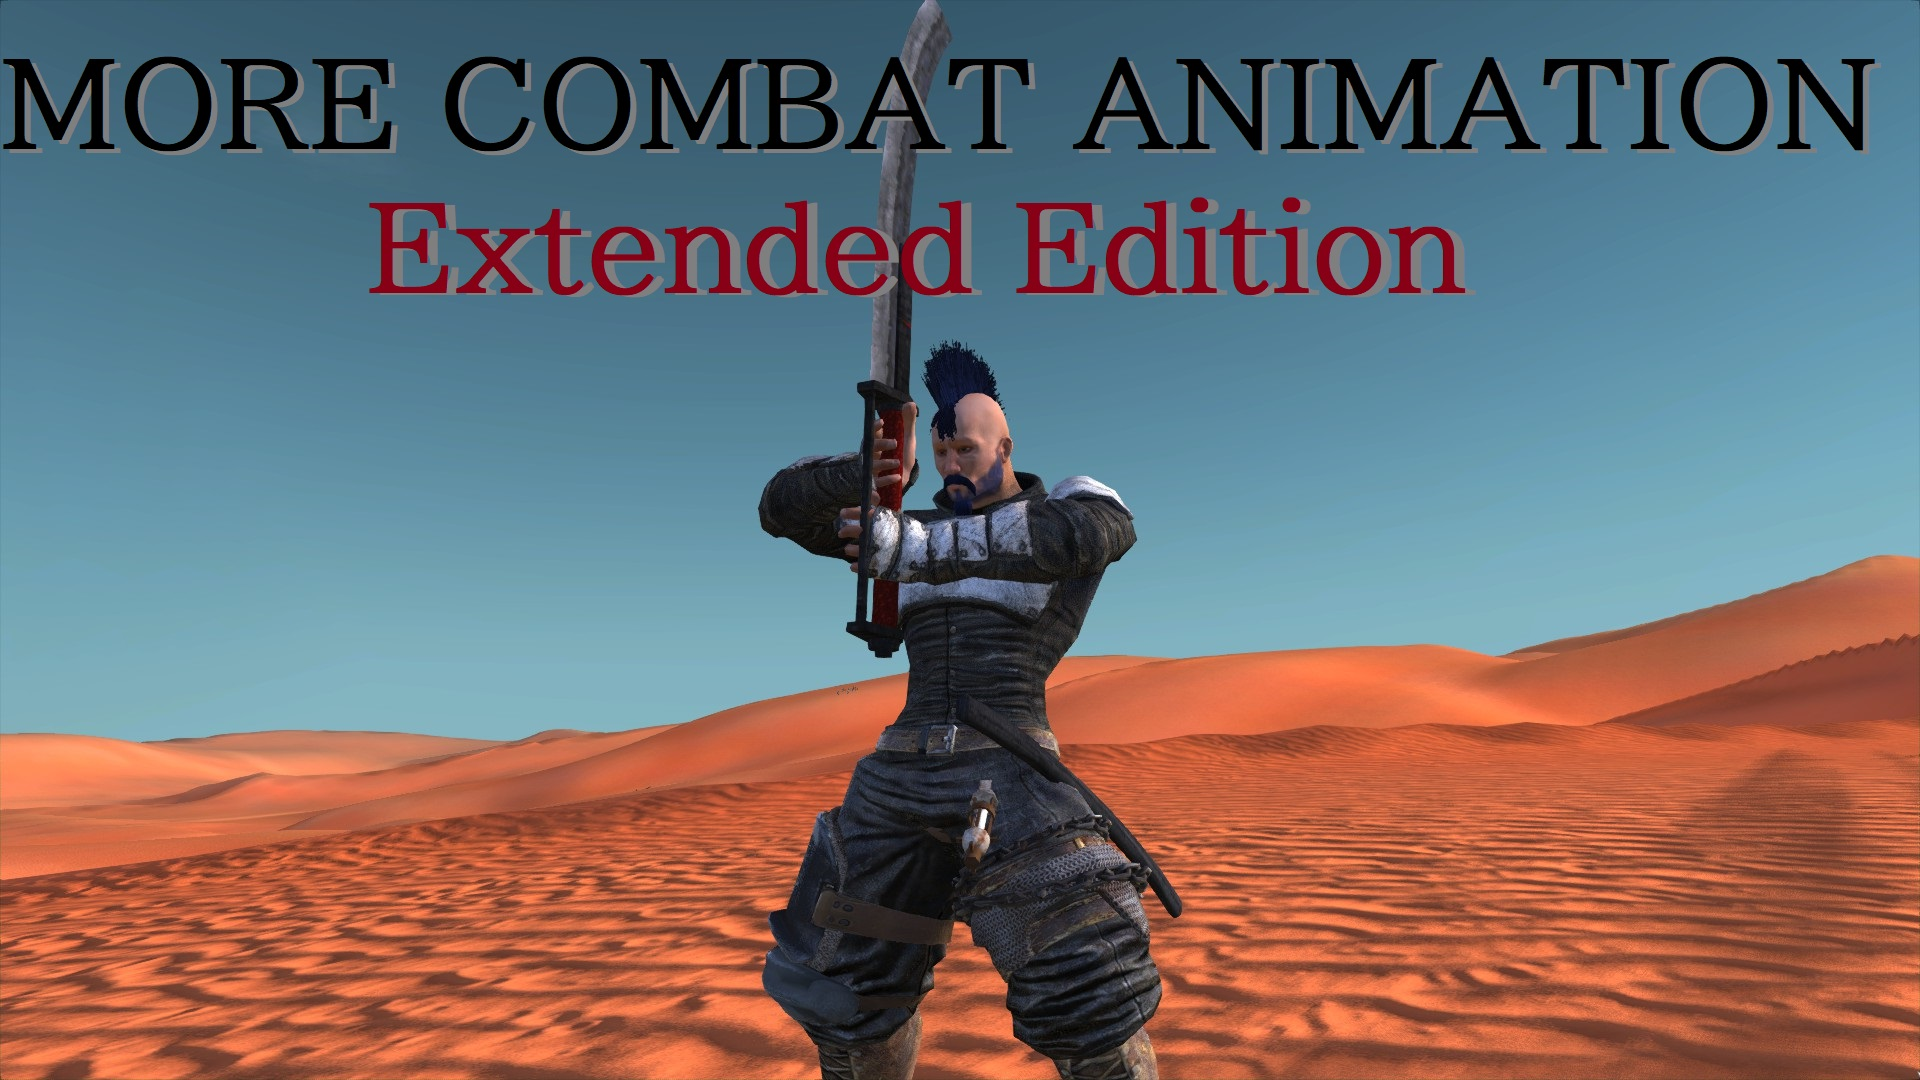 More Combat Animation Extended Edition